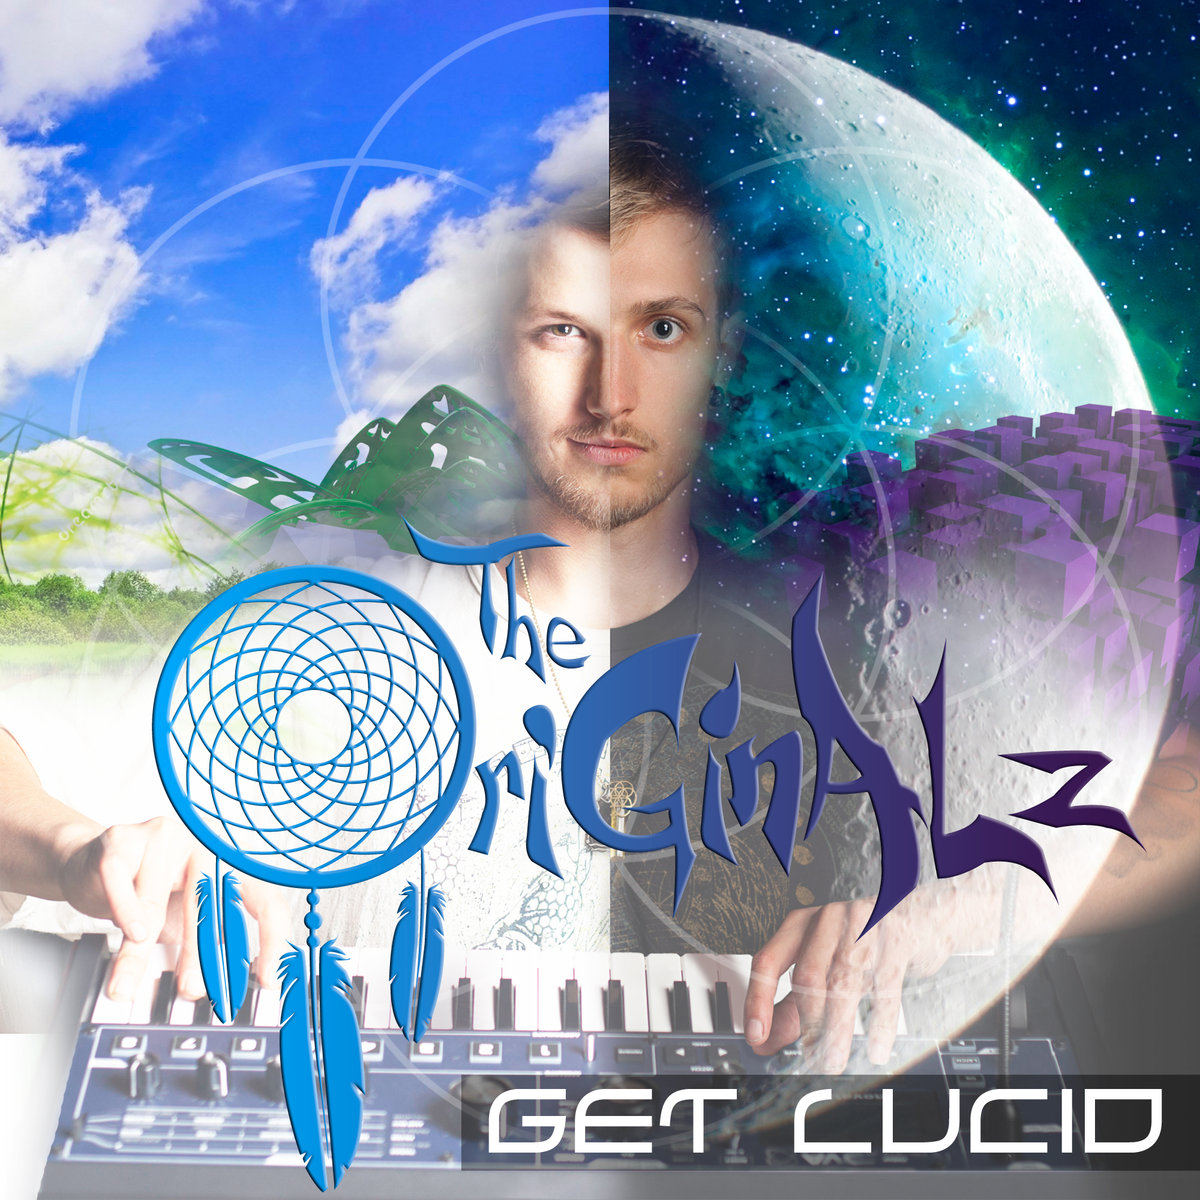 The OriGinALz - Descending Ascendance @ 'Get Lucid' album (Austin)